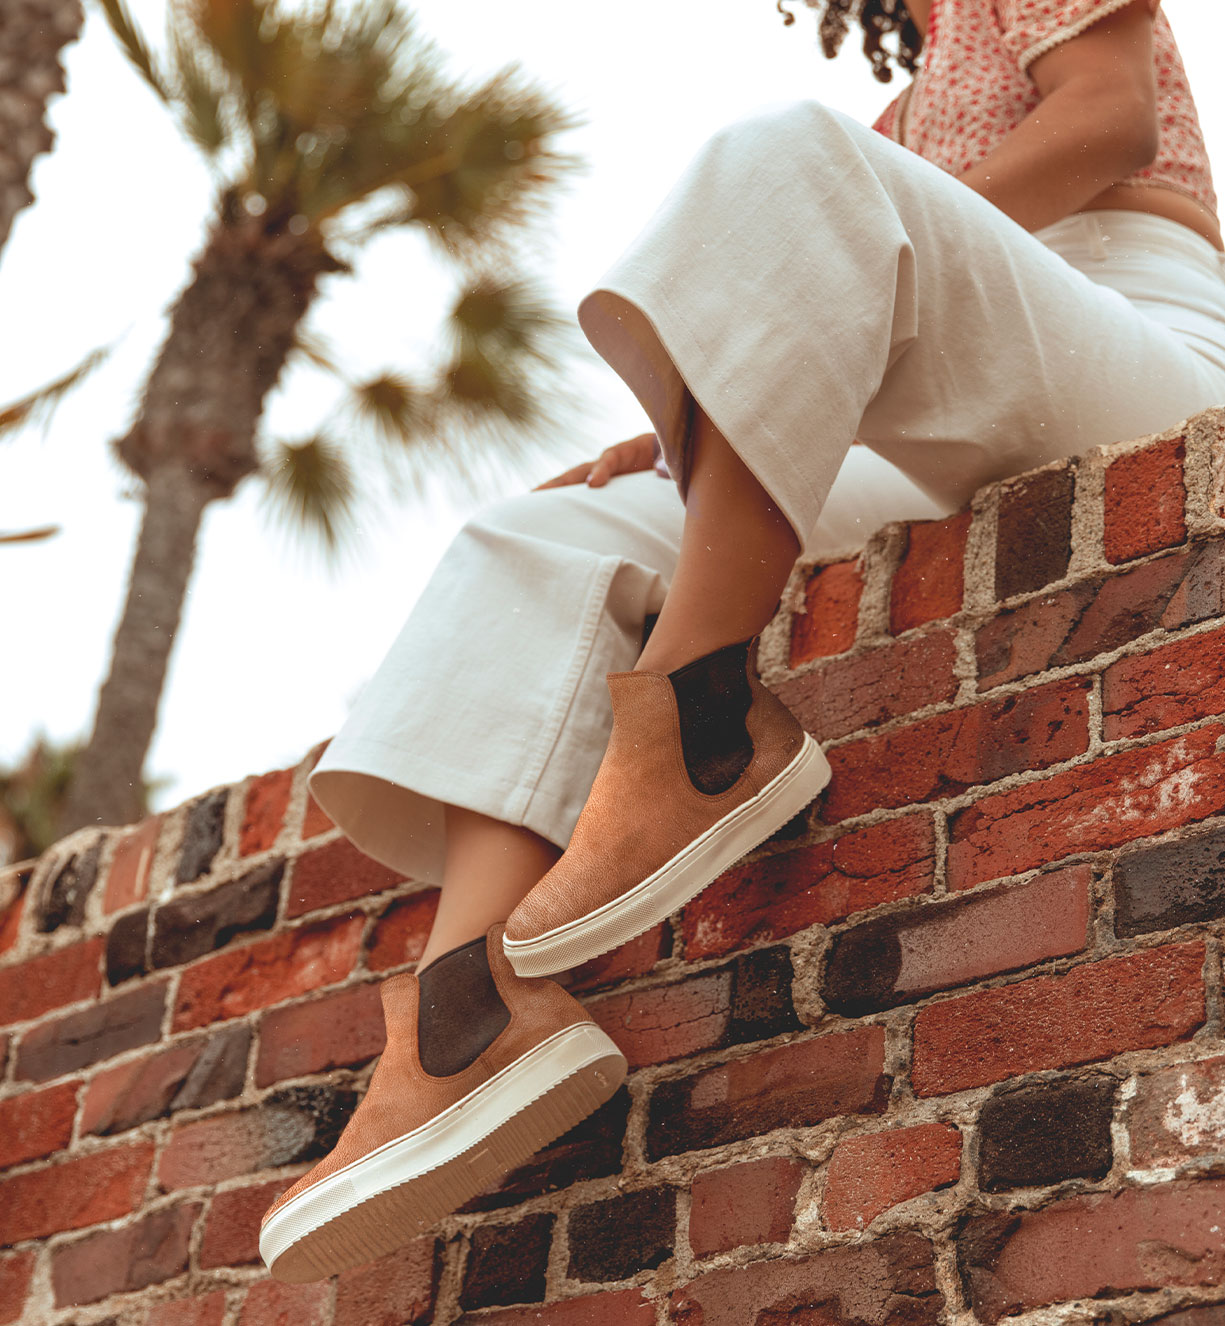 Woman is wearing sneaker boots in tan color